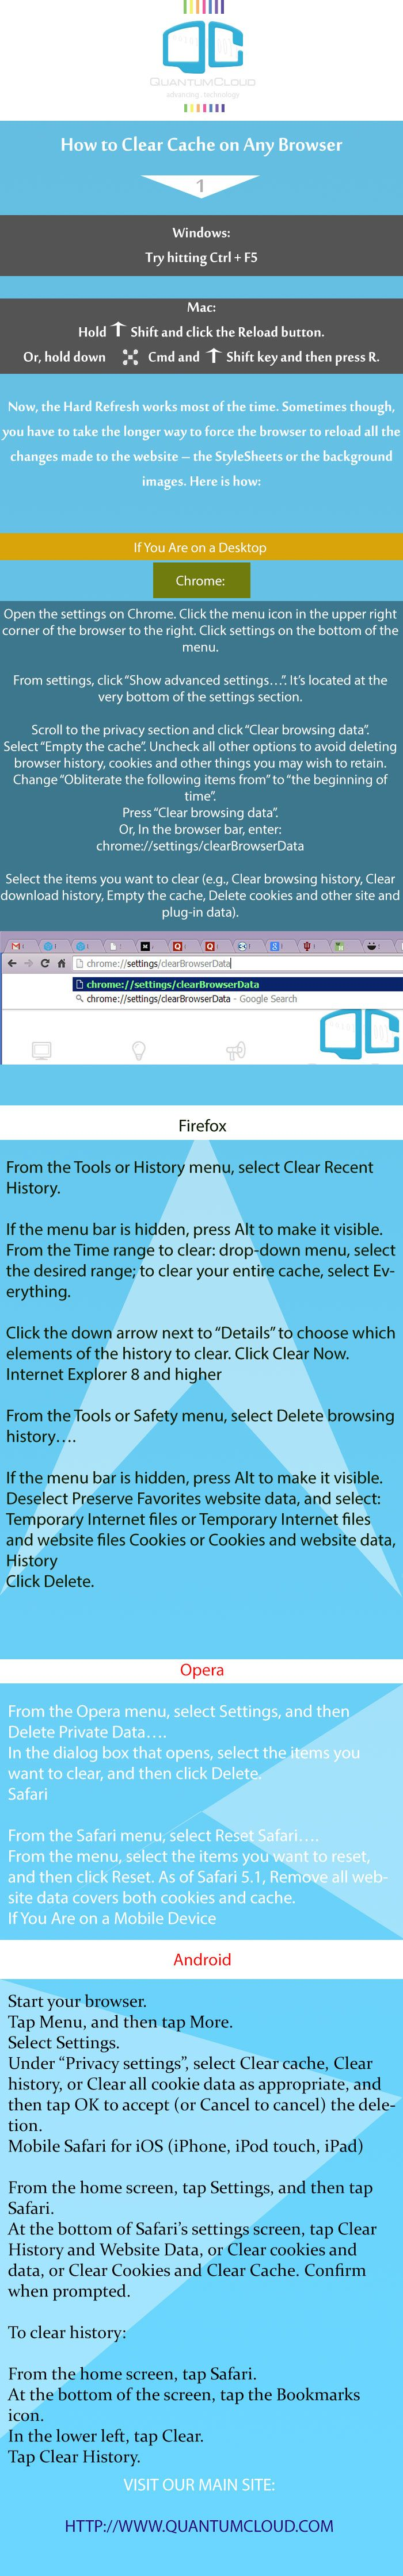 How to Clear Cache on Any Browser infographic. Please visit our main site:  http://www.quantumcloud.com/